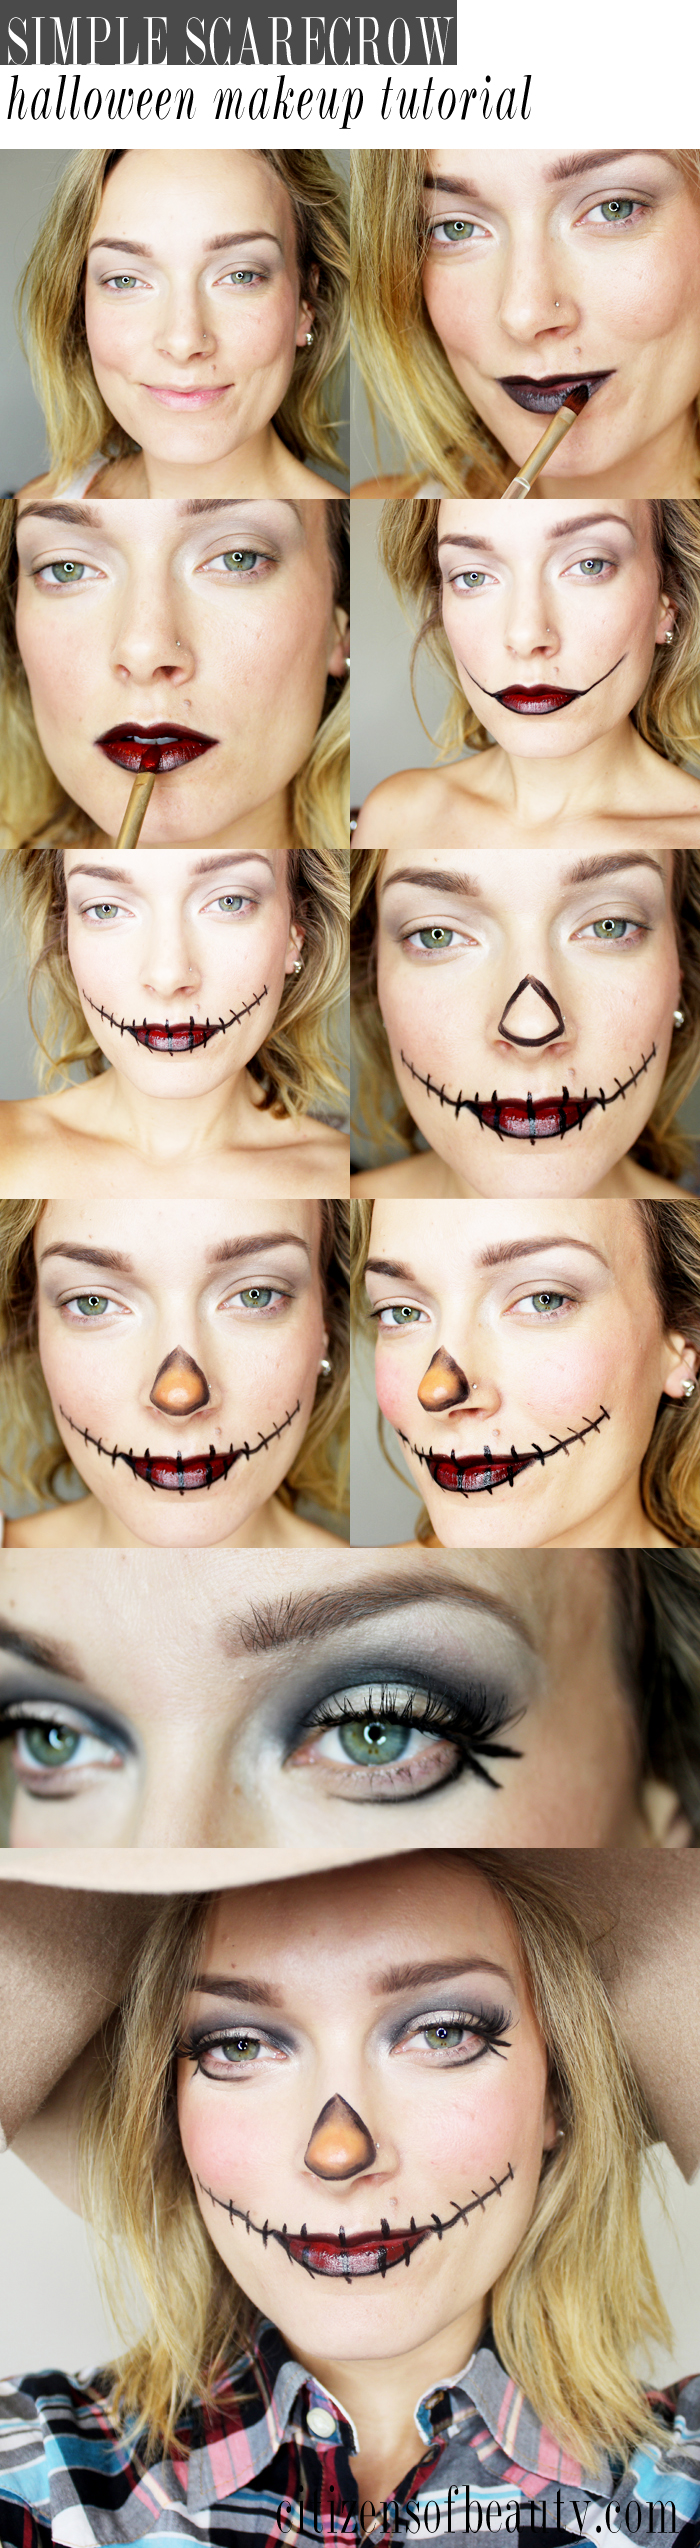 Get this easy scarecrow makeup look for halloween with a simple step-by-step guide with makeup artist and beauty blogger, Kendra Stanton